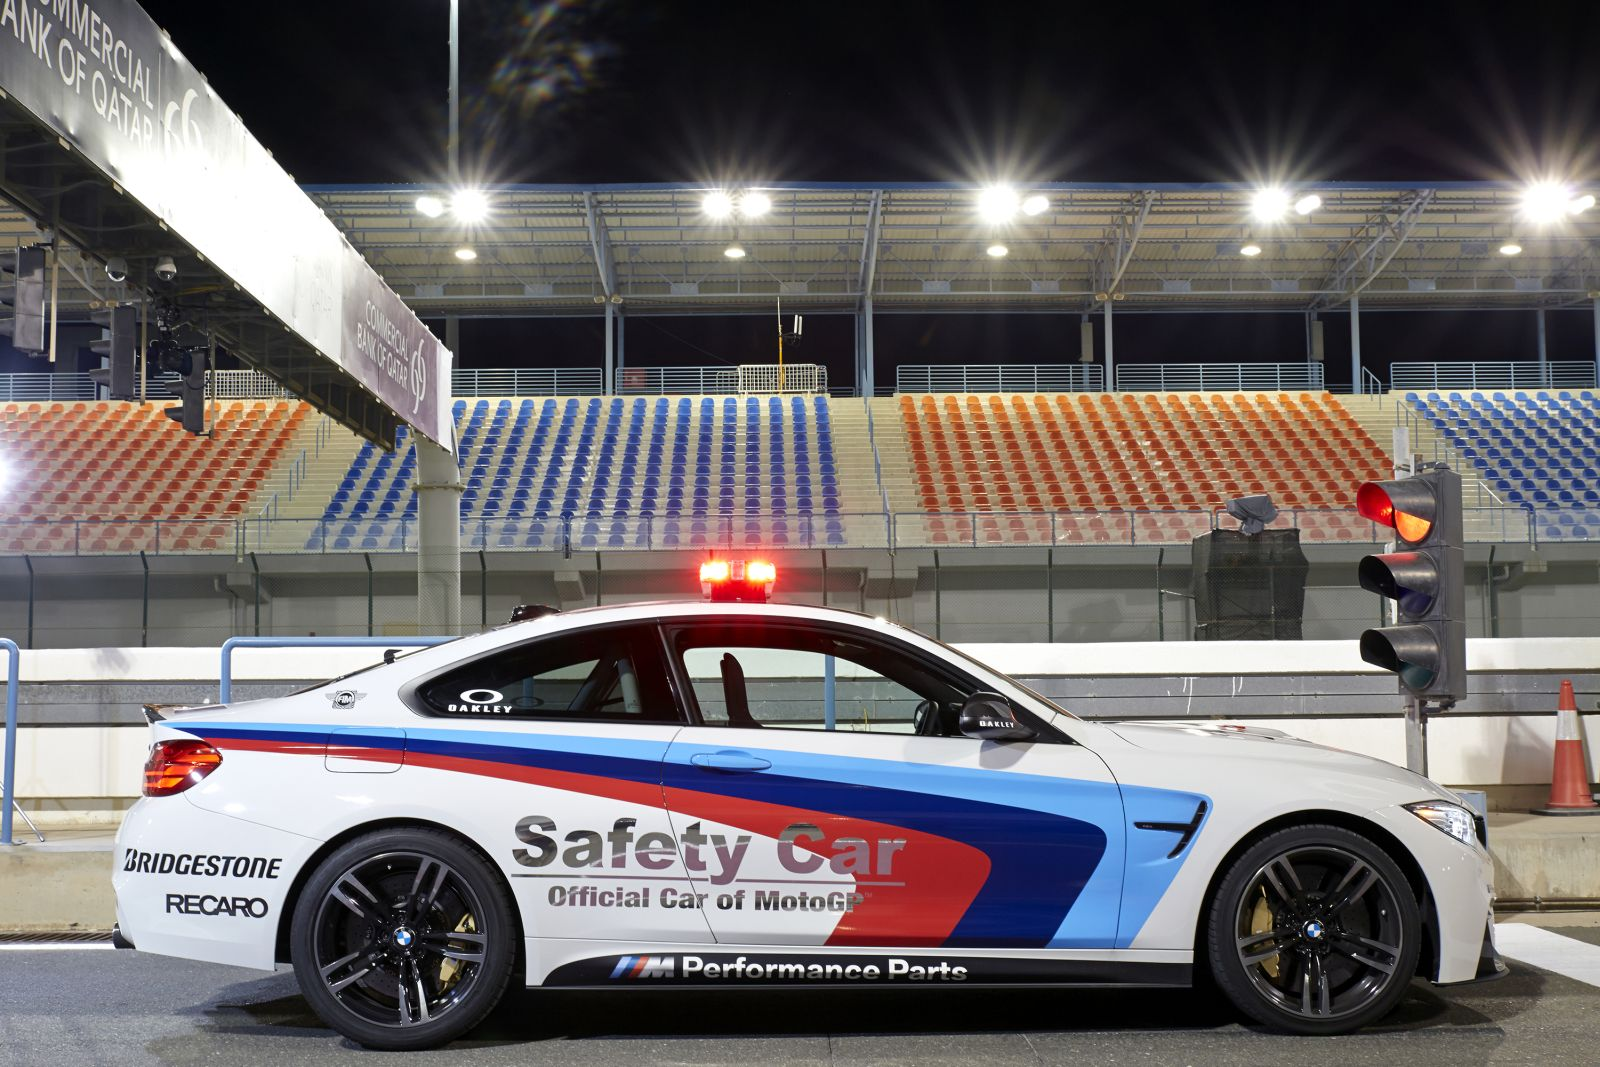 bmw-m4-safety-car-moto-gp-bridgestone-Pitlane-Qatar